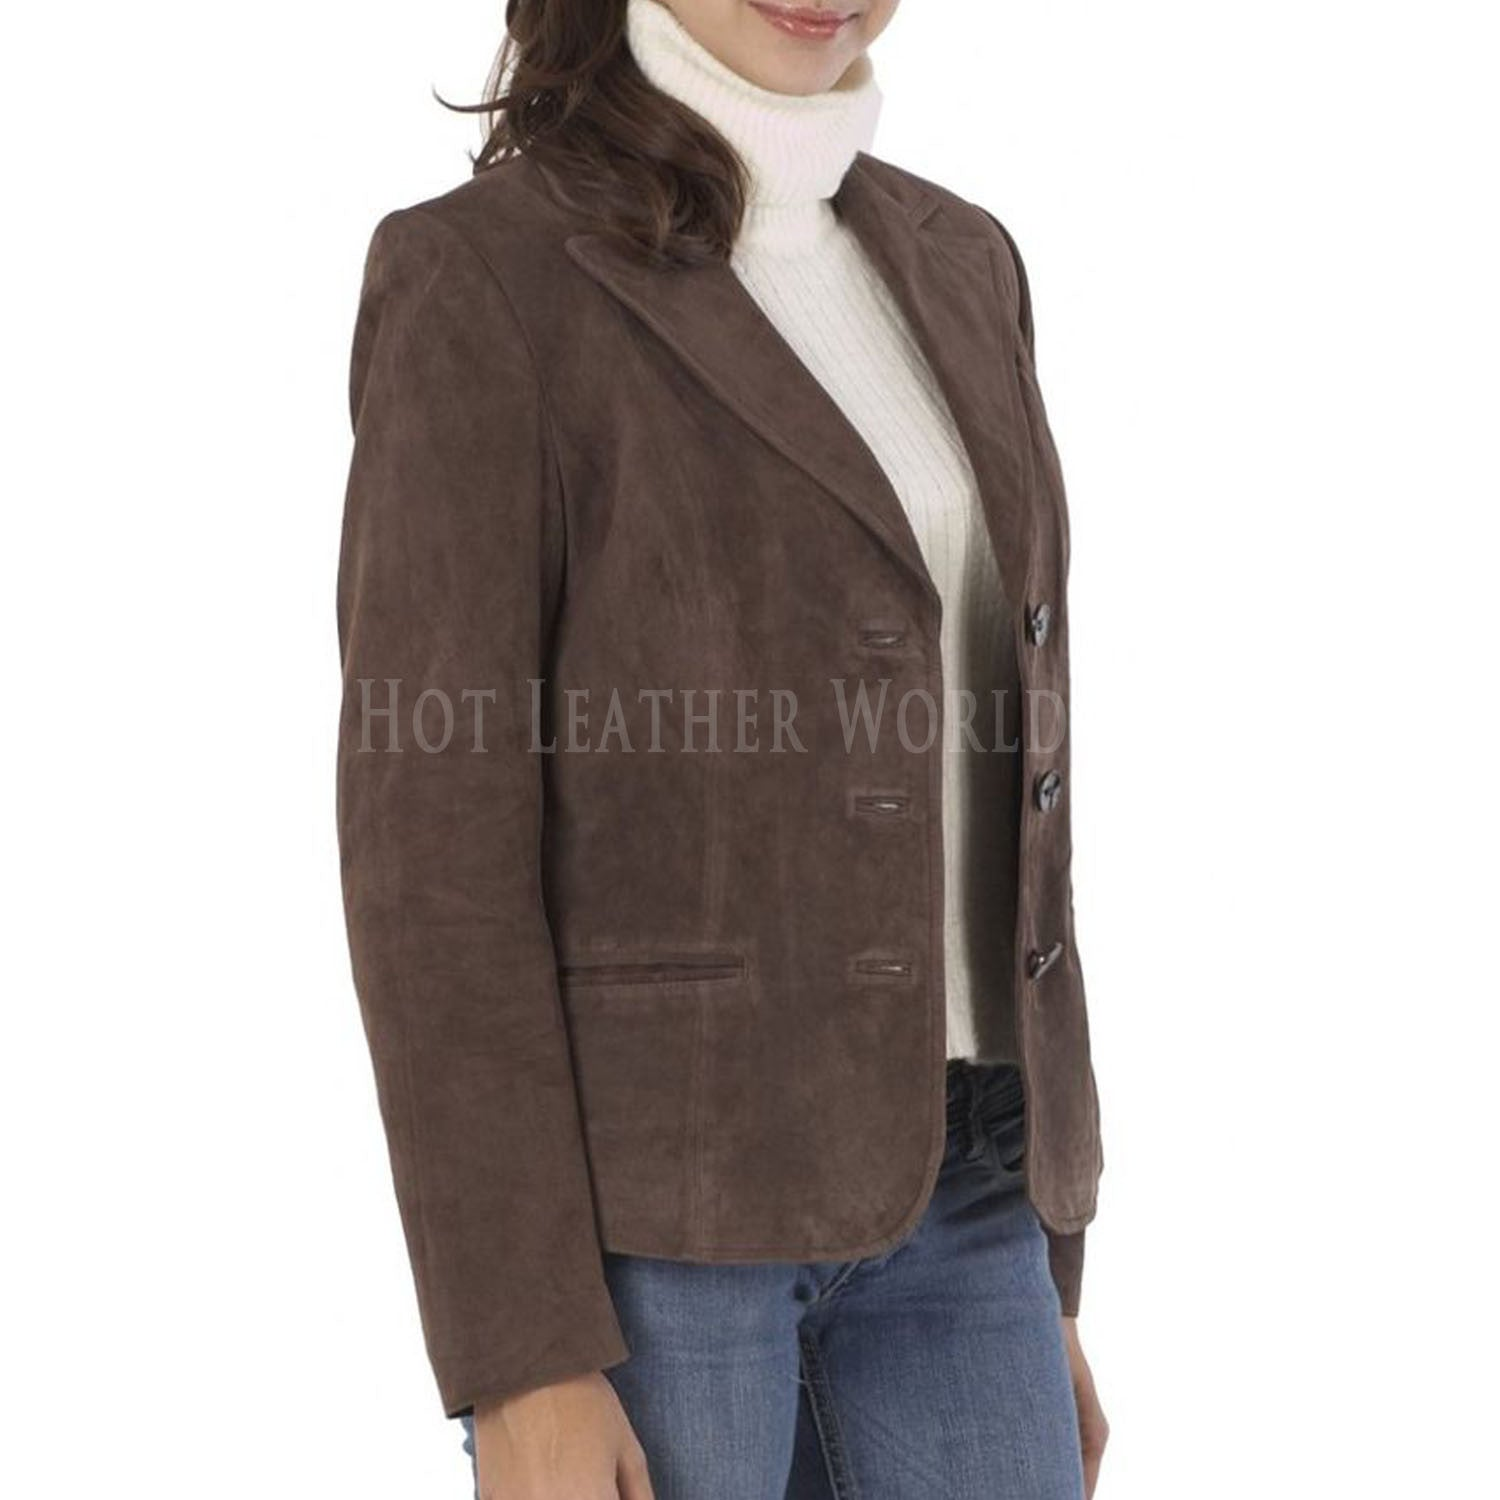 Suede Leather Classic Style Blazer -  HOTLEATHERWORLD